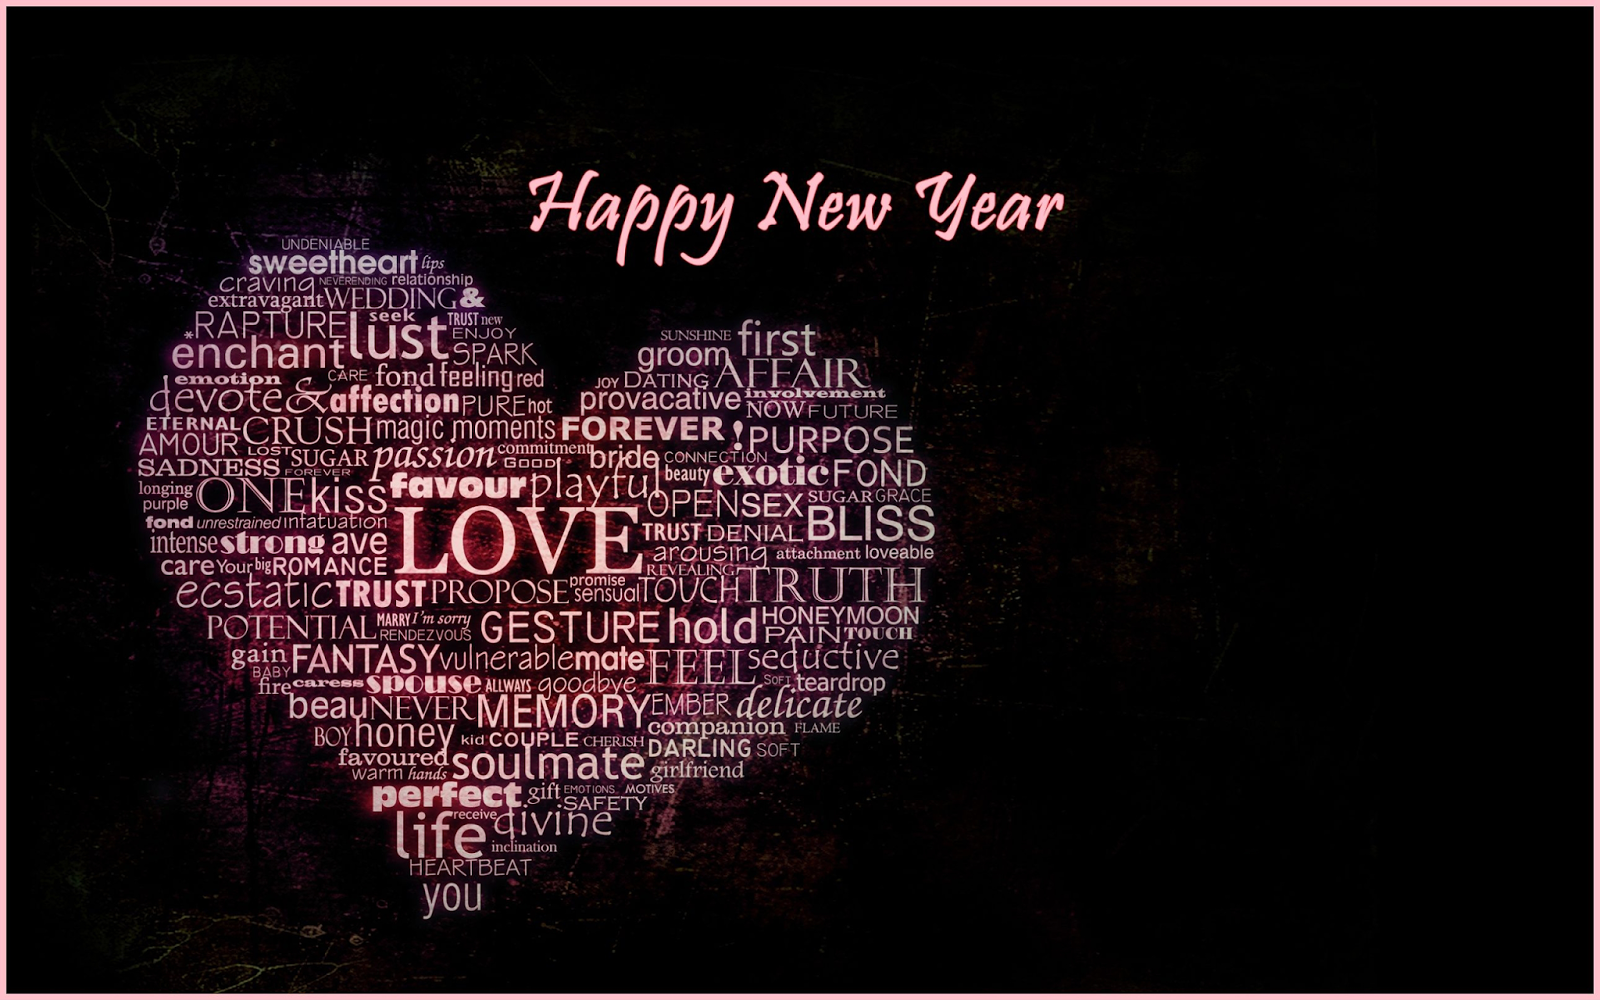 Happy New Year 2019 Wishes Quotes Saying Messages Greeting Cards